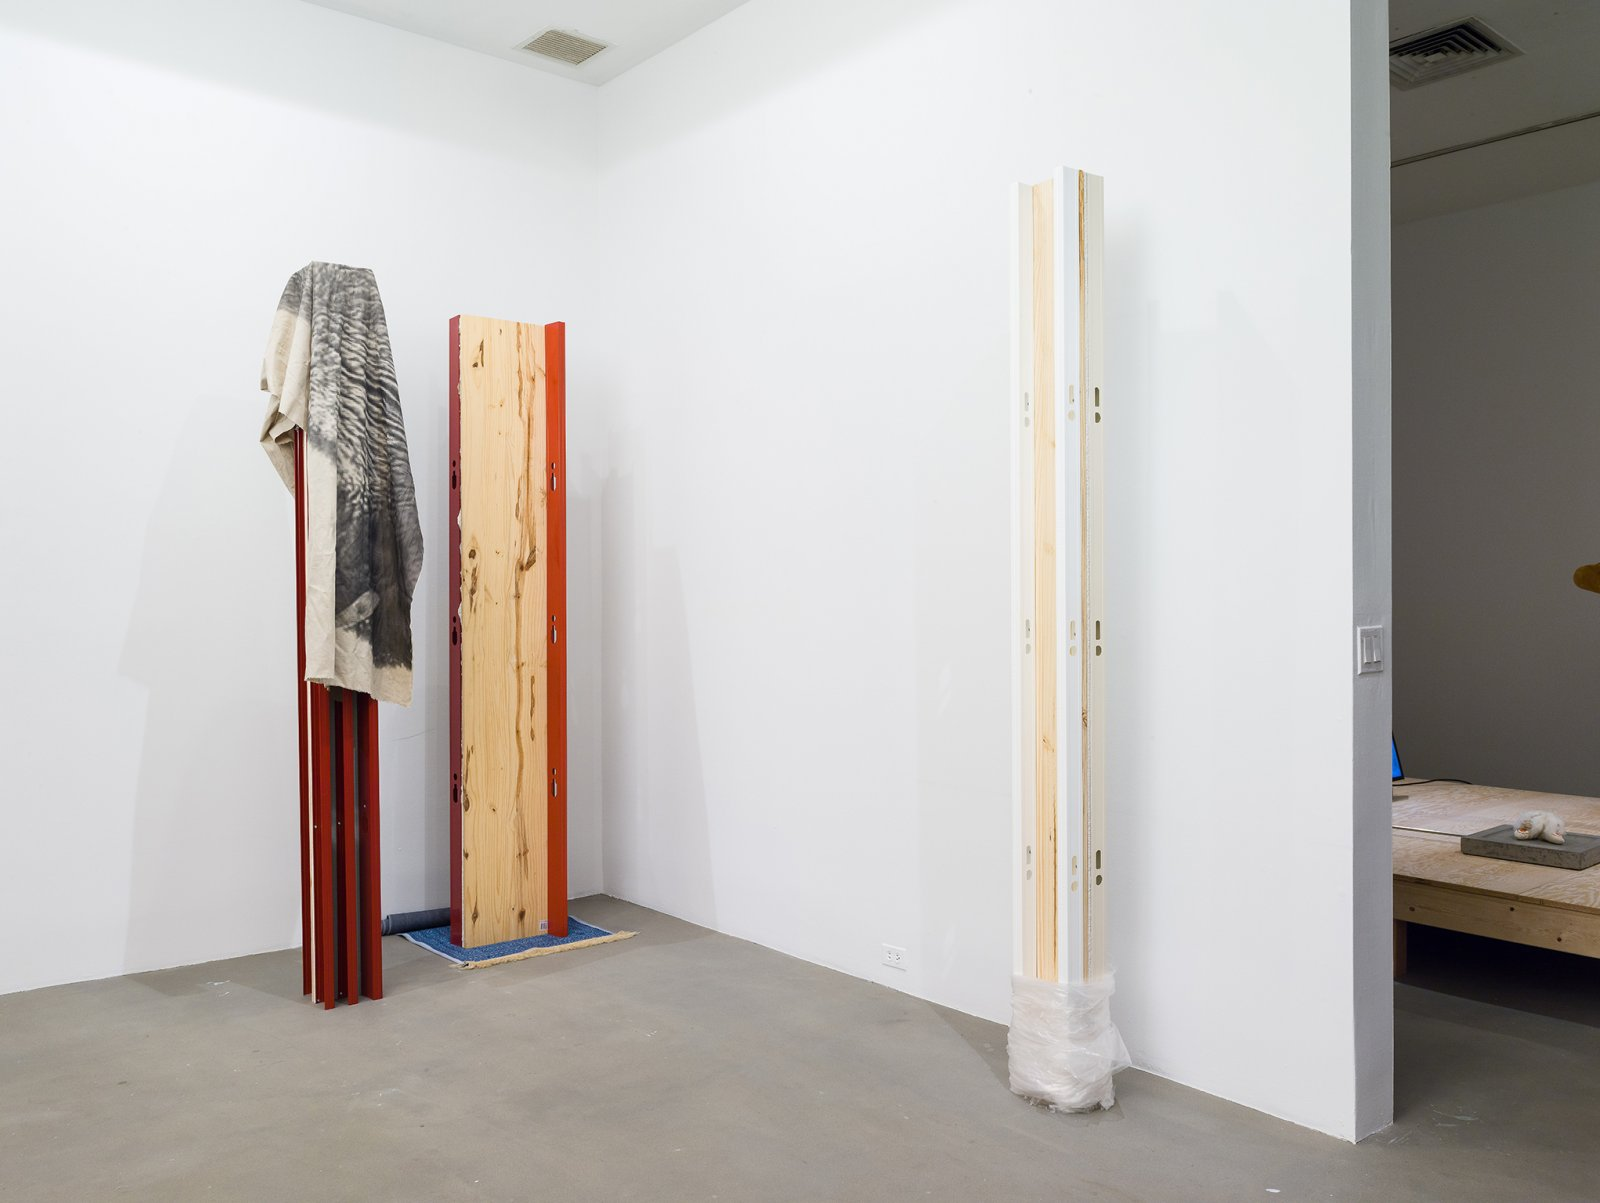 Duane Linklater, installation view, From Our Hands, 80WSE Gallery, New York, 2016 by Duane Linklater